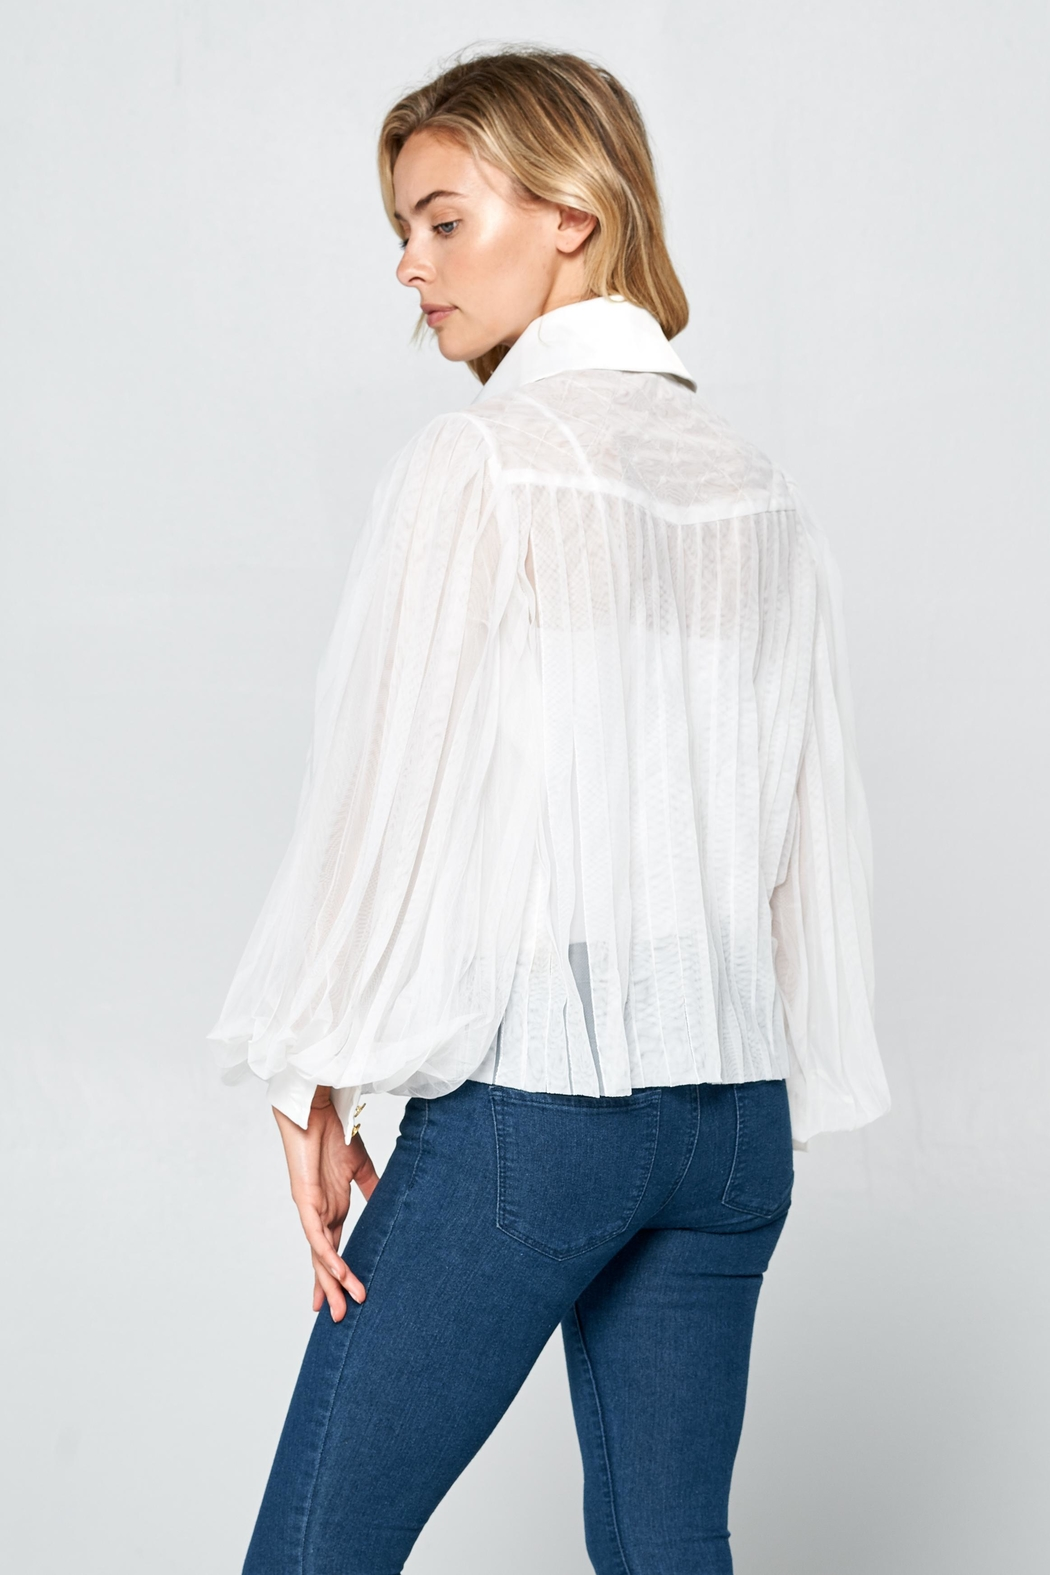 Racine Romantic Silhouette Blouse - Back Cropped Image